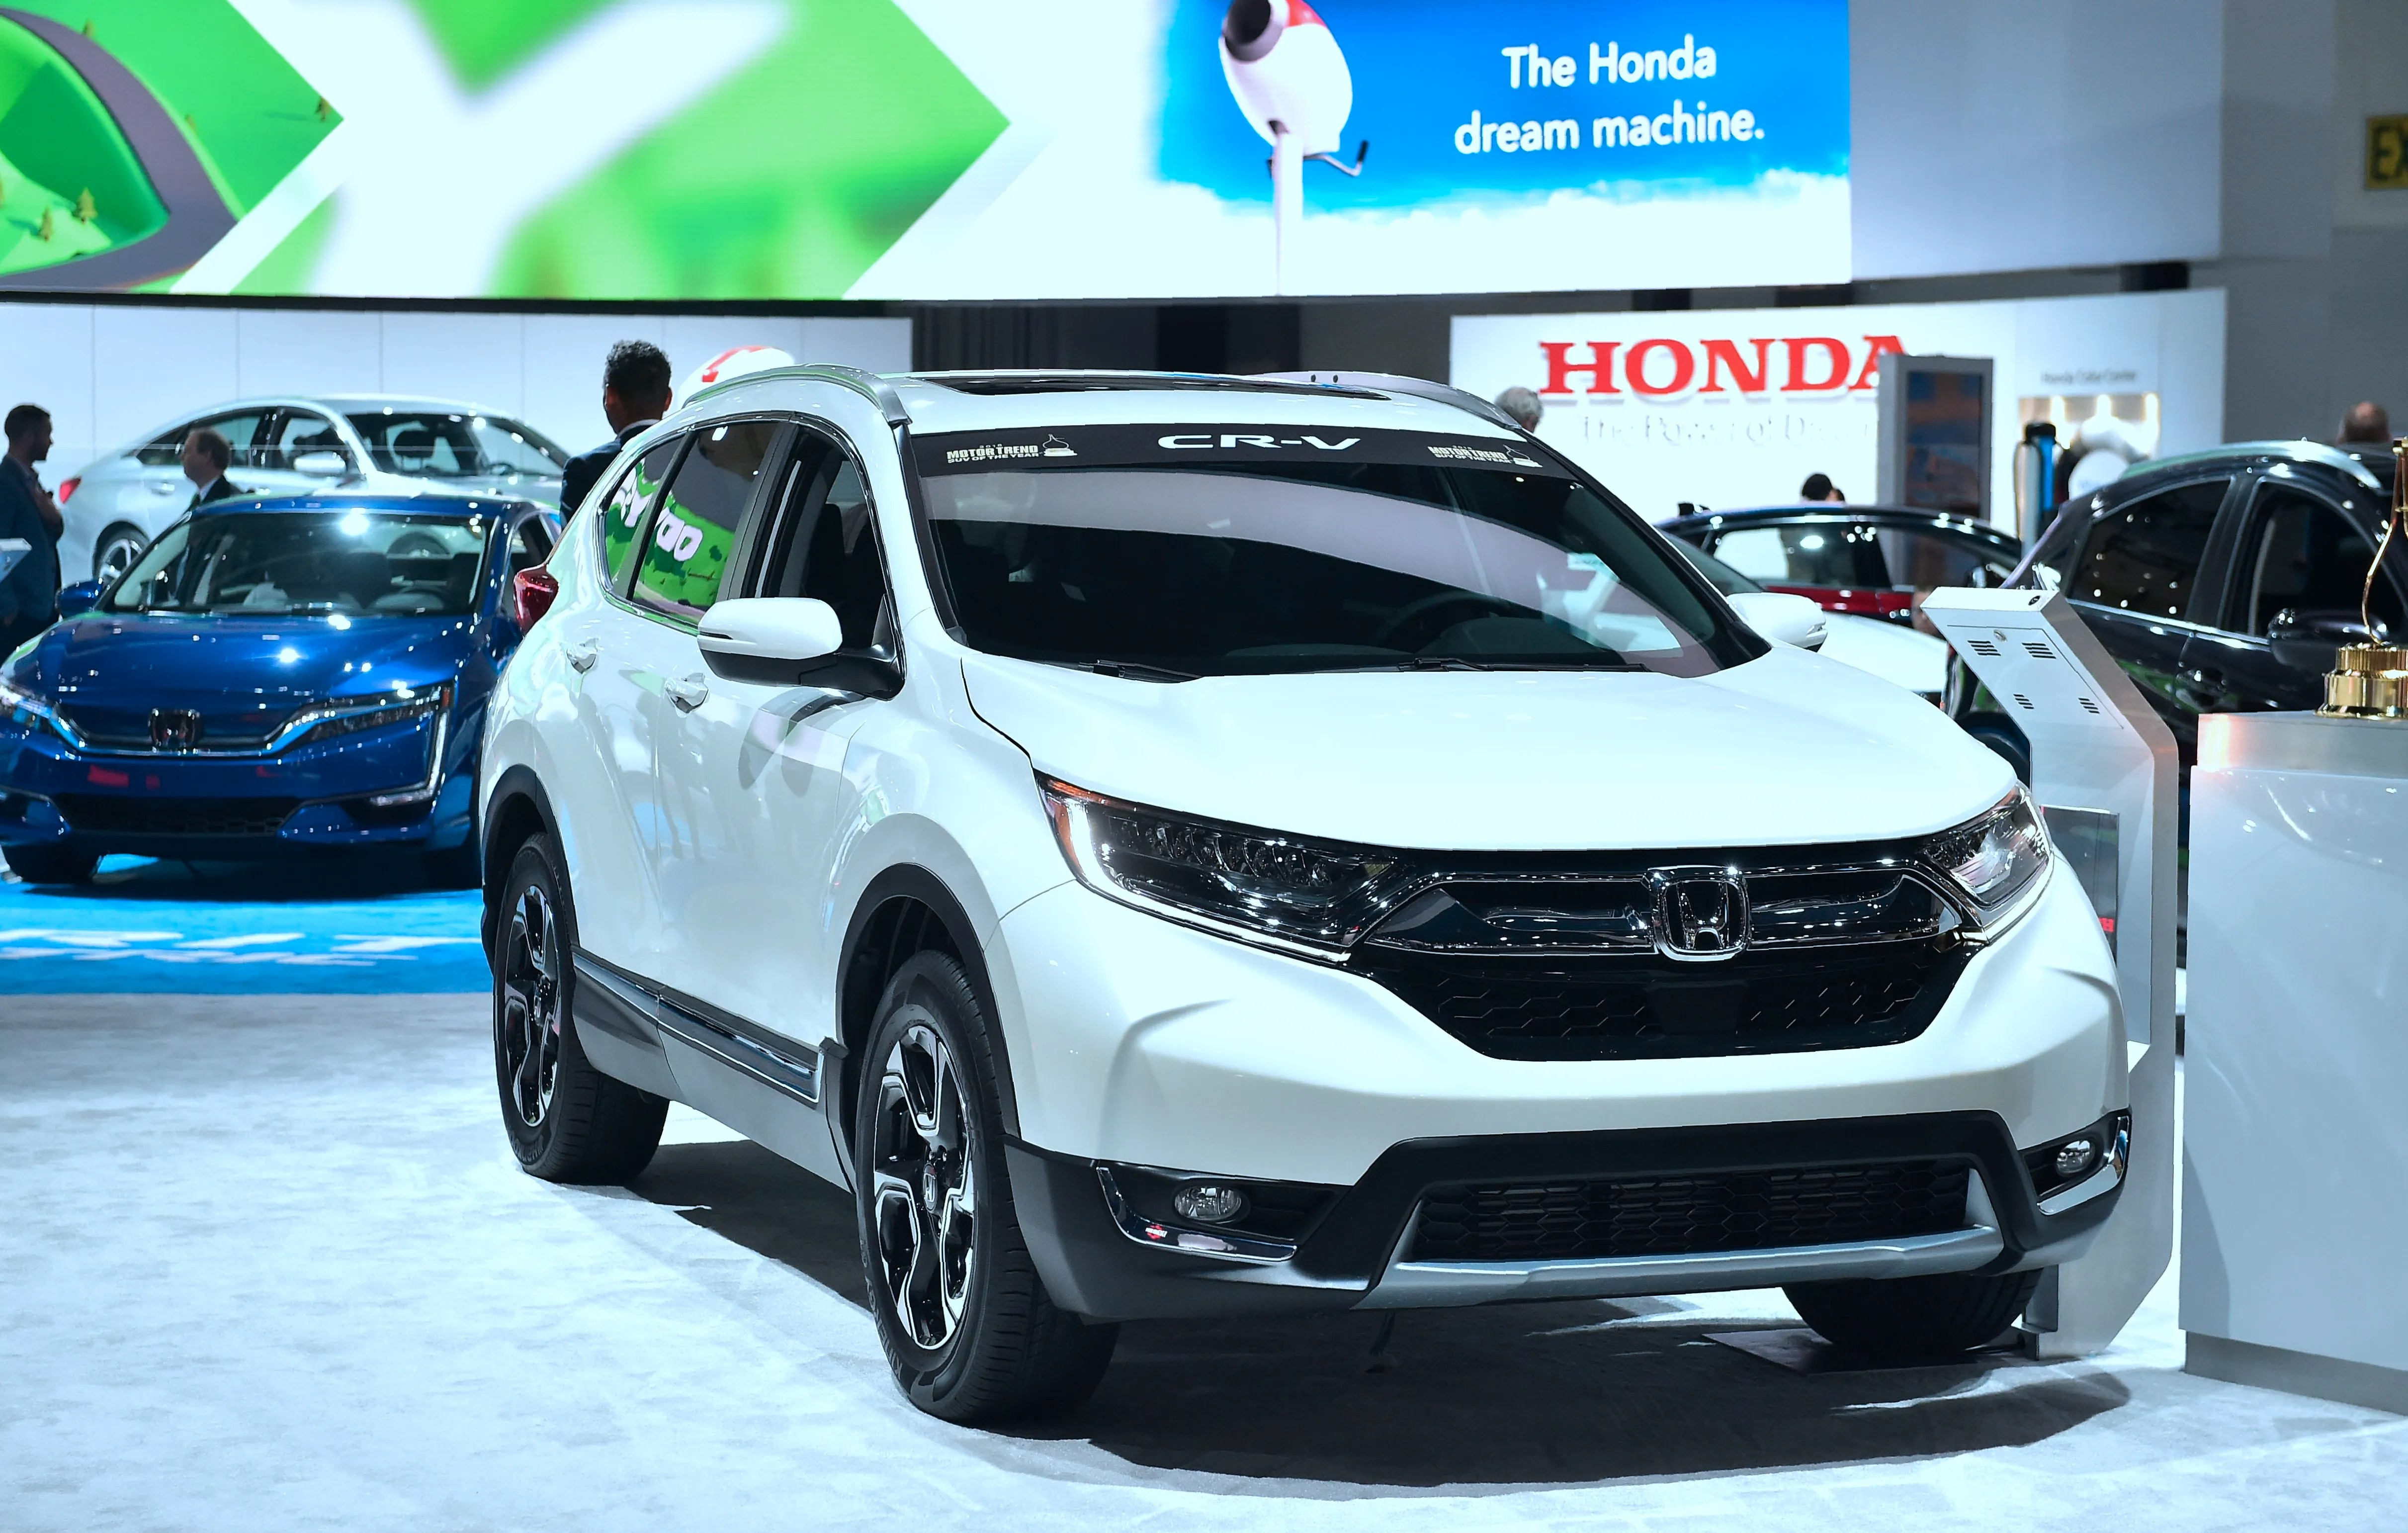 636554094860003866-AFP-AFP-UR1VT Take A Look About Murano Vs Crv with Fascinating Pictures Cars Review